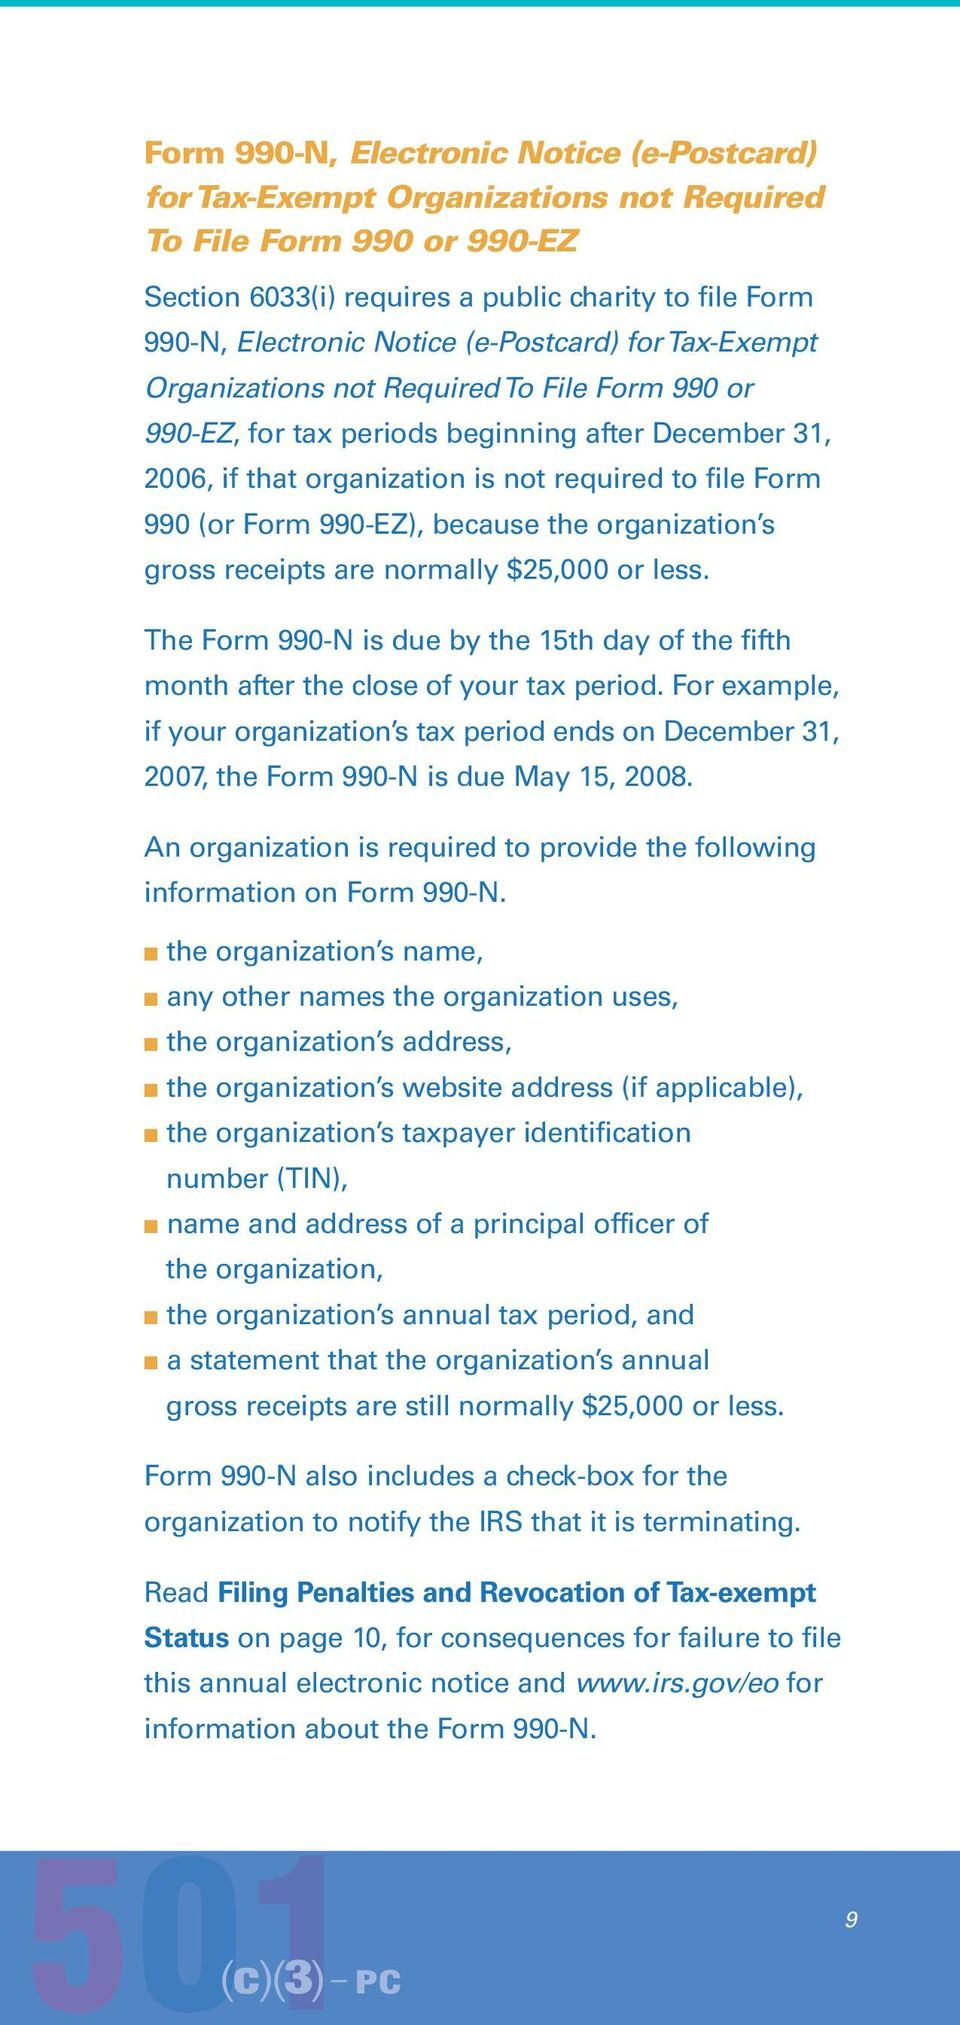 990-EZ), because the organization s gross receipts are normally $25,000 or less. The Form 990-N is due by the 15th day of the fifth month after the close of your tax period.